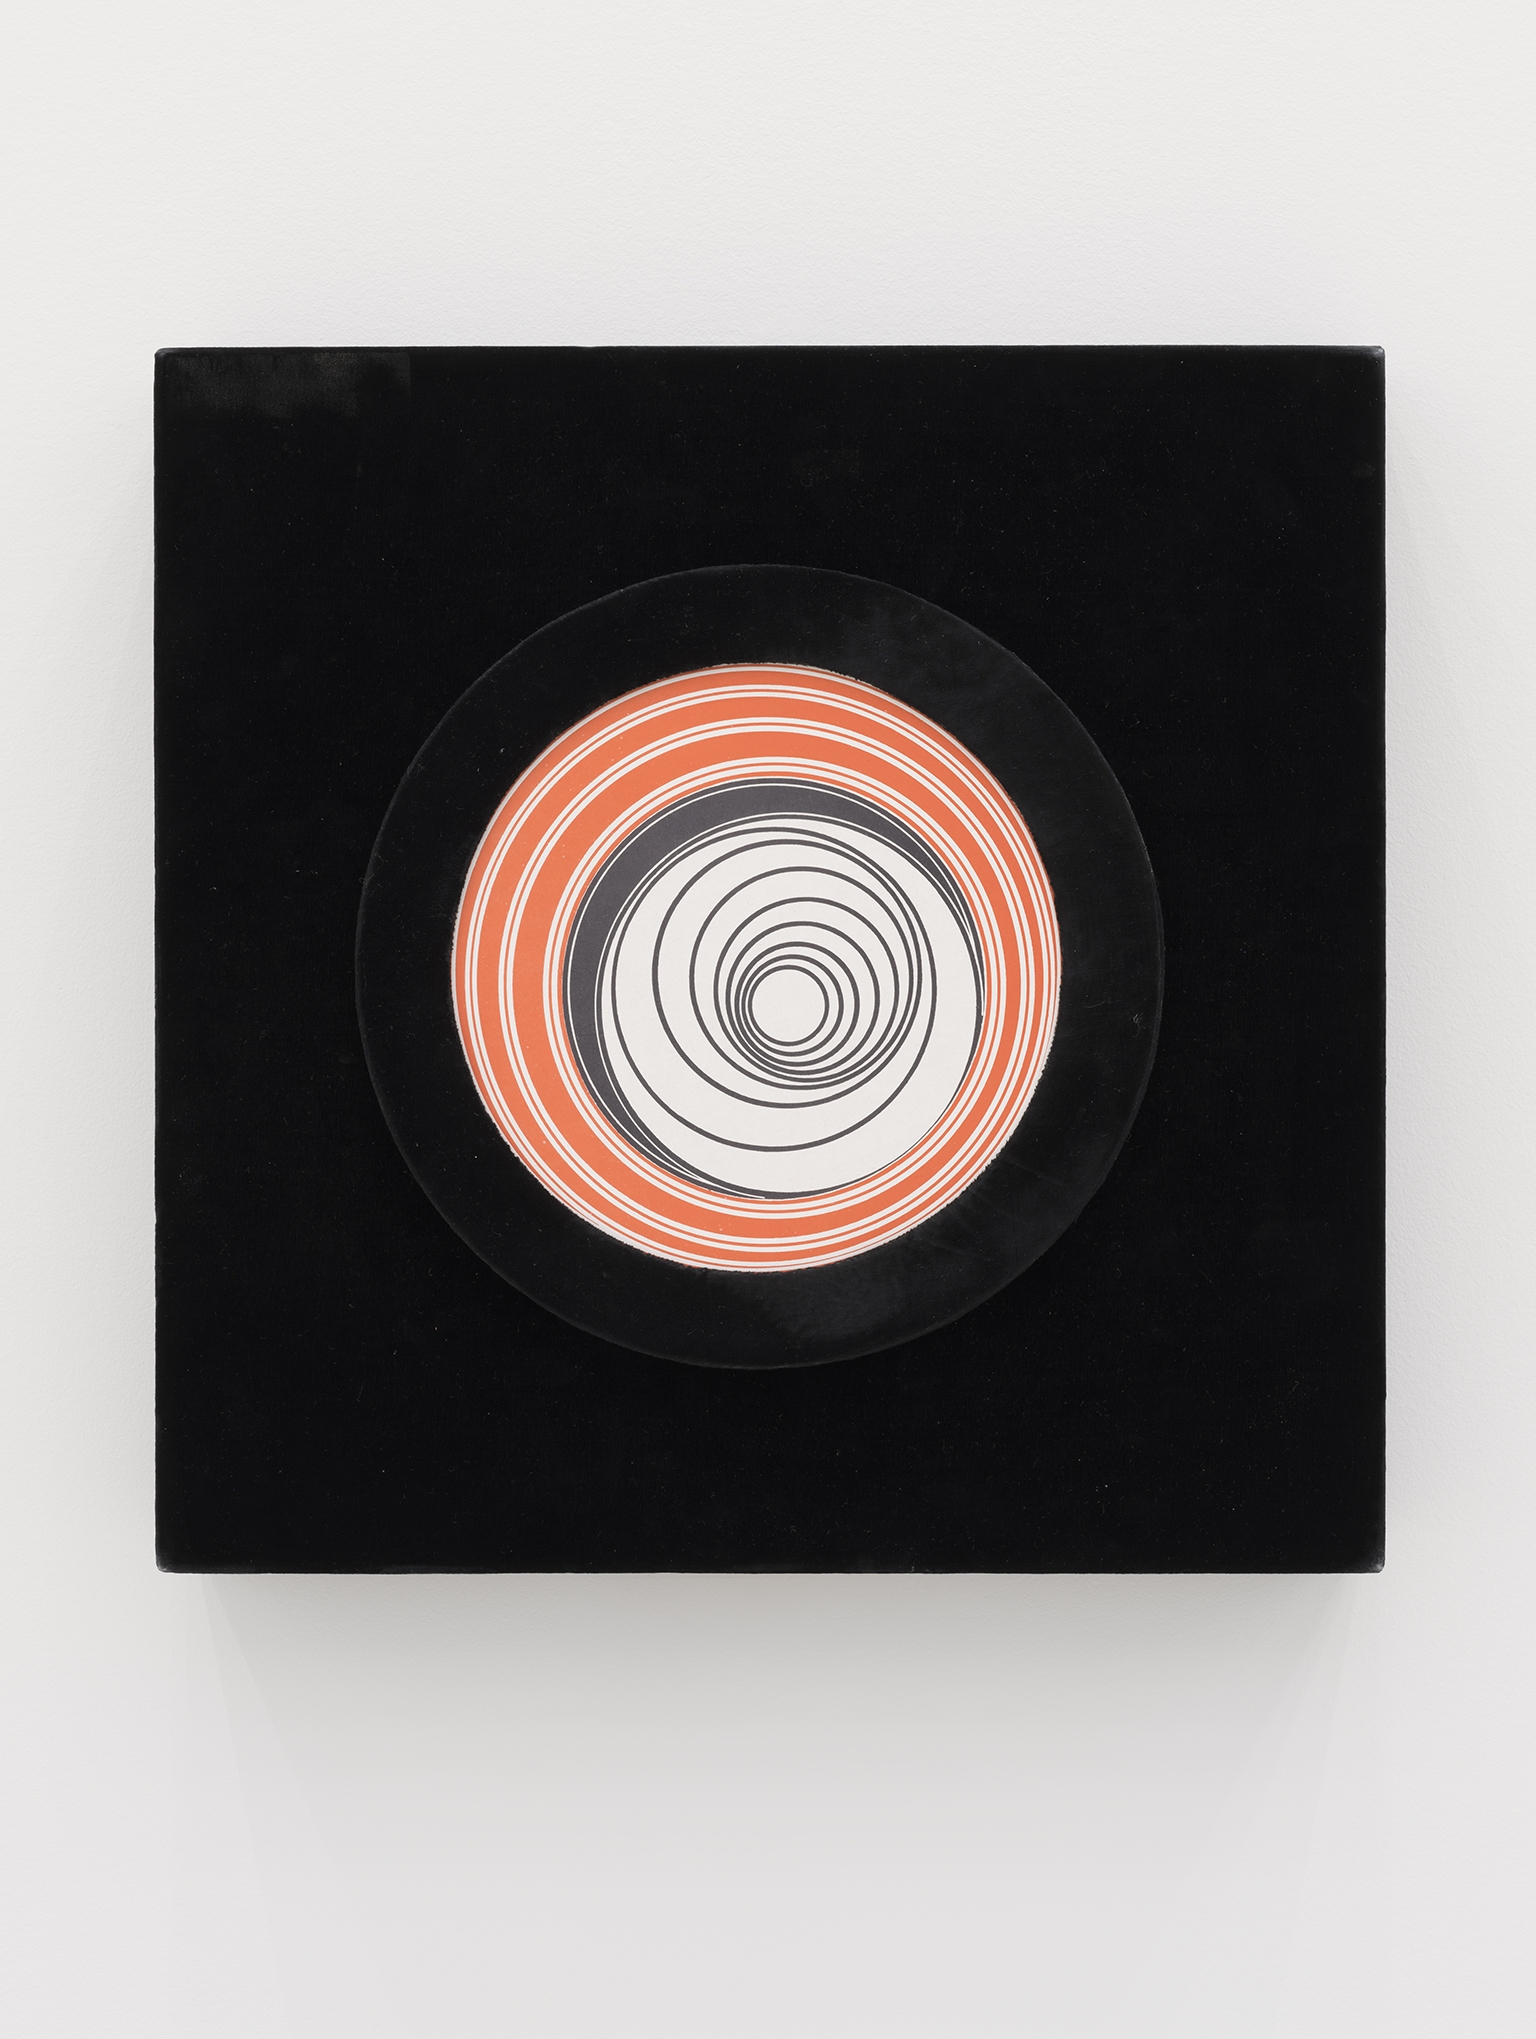 ​Marcel Duchamp, Rotoreliefs (Optical Disks), 1935/1965, offset lithograph, motorized machine, 15 x 15 x 5 in. (37 x 37 x 11 cm) by